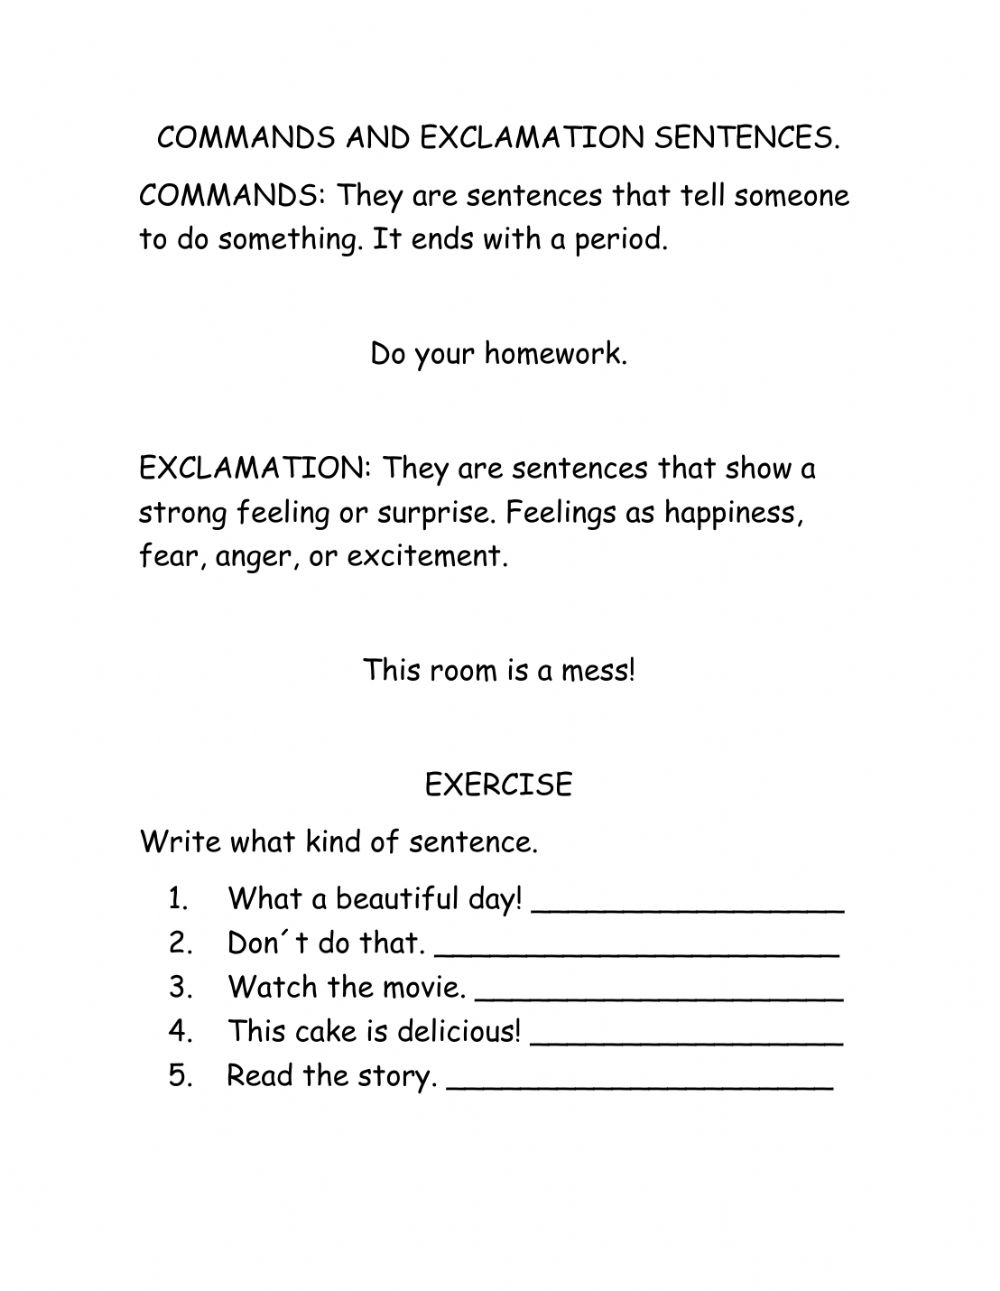 medium resolution of Commands and exclamatory sentences worksheet